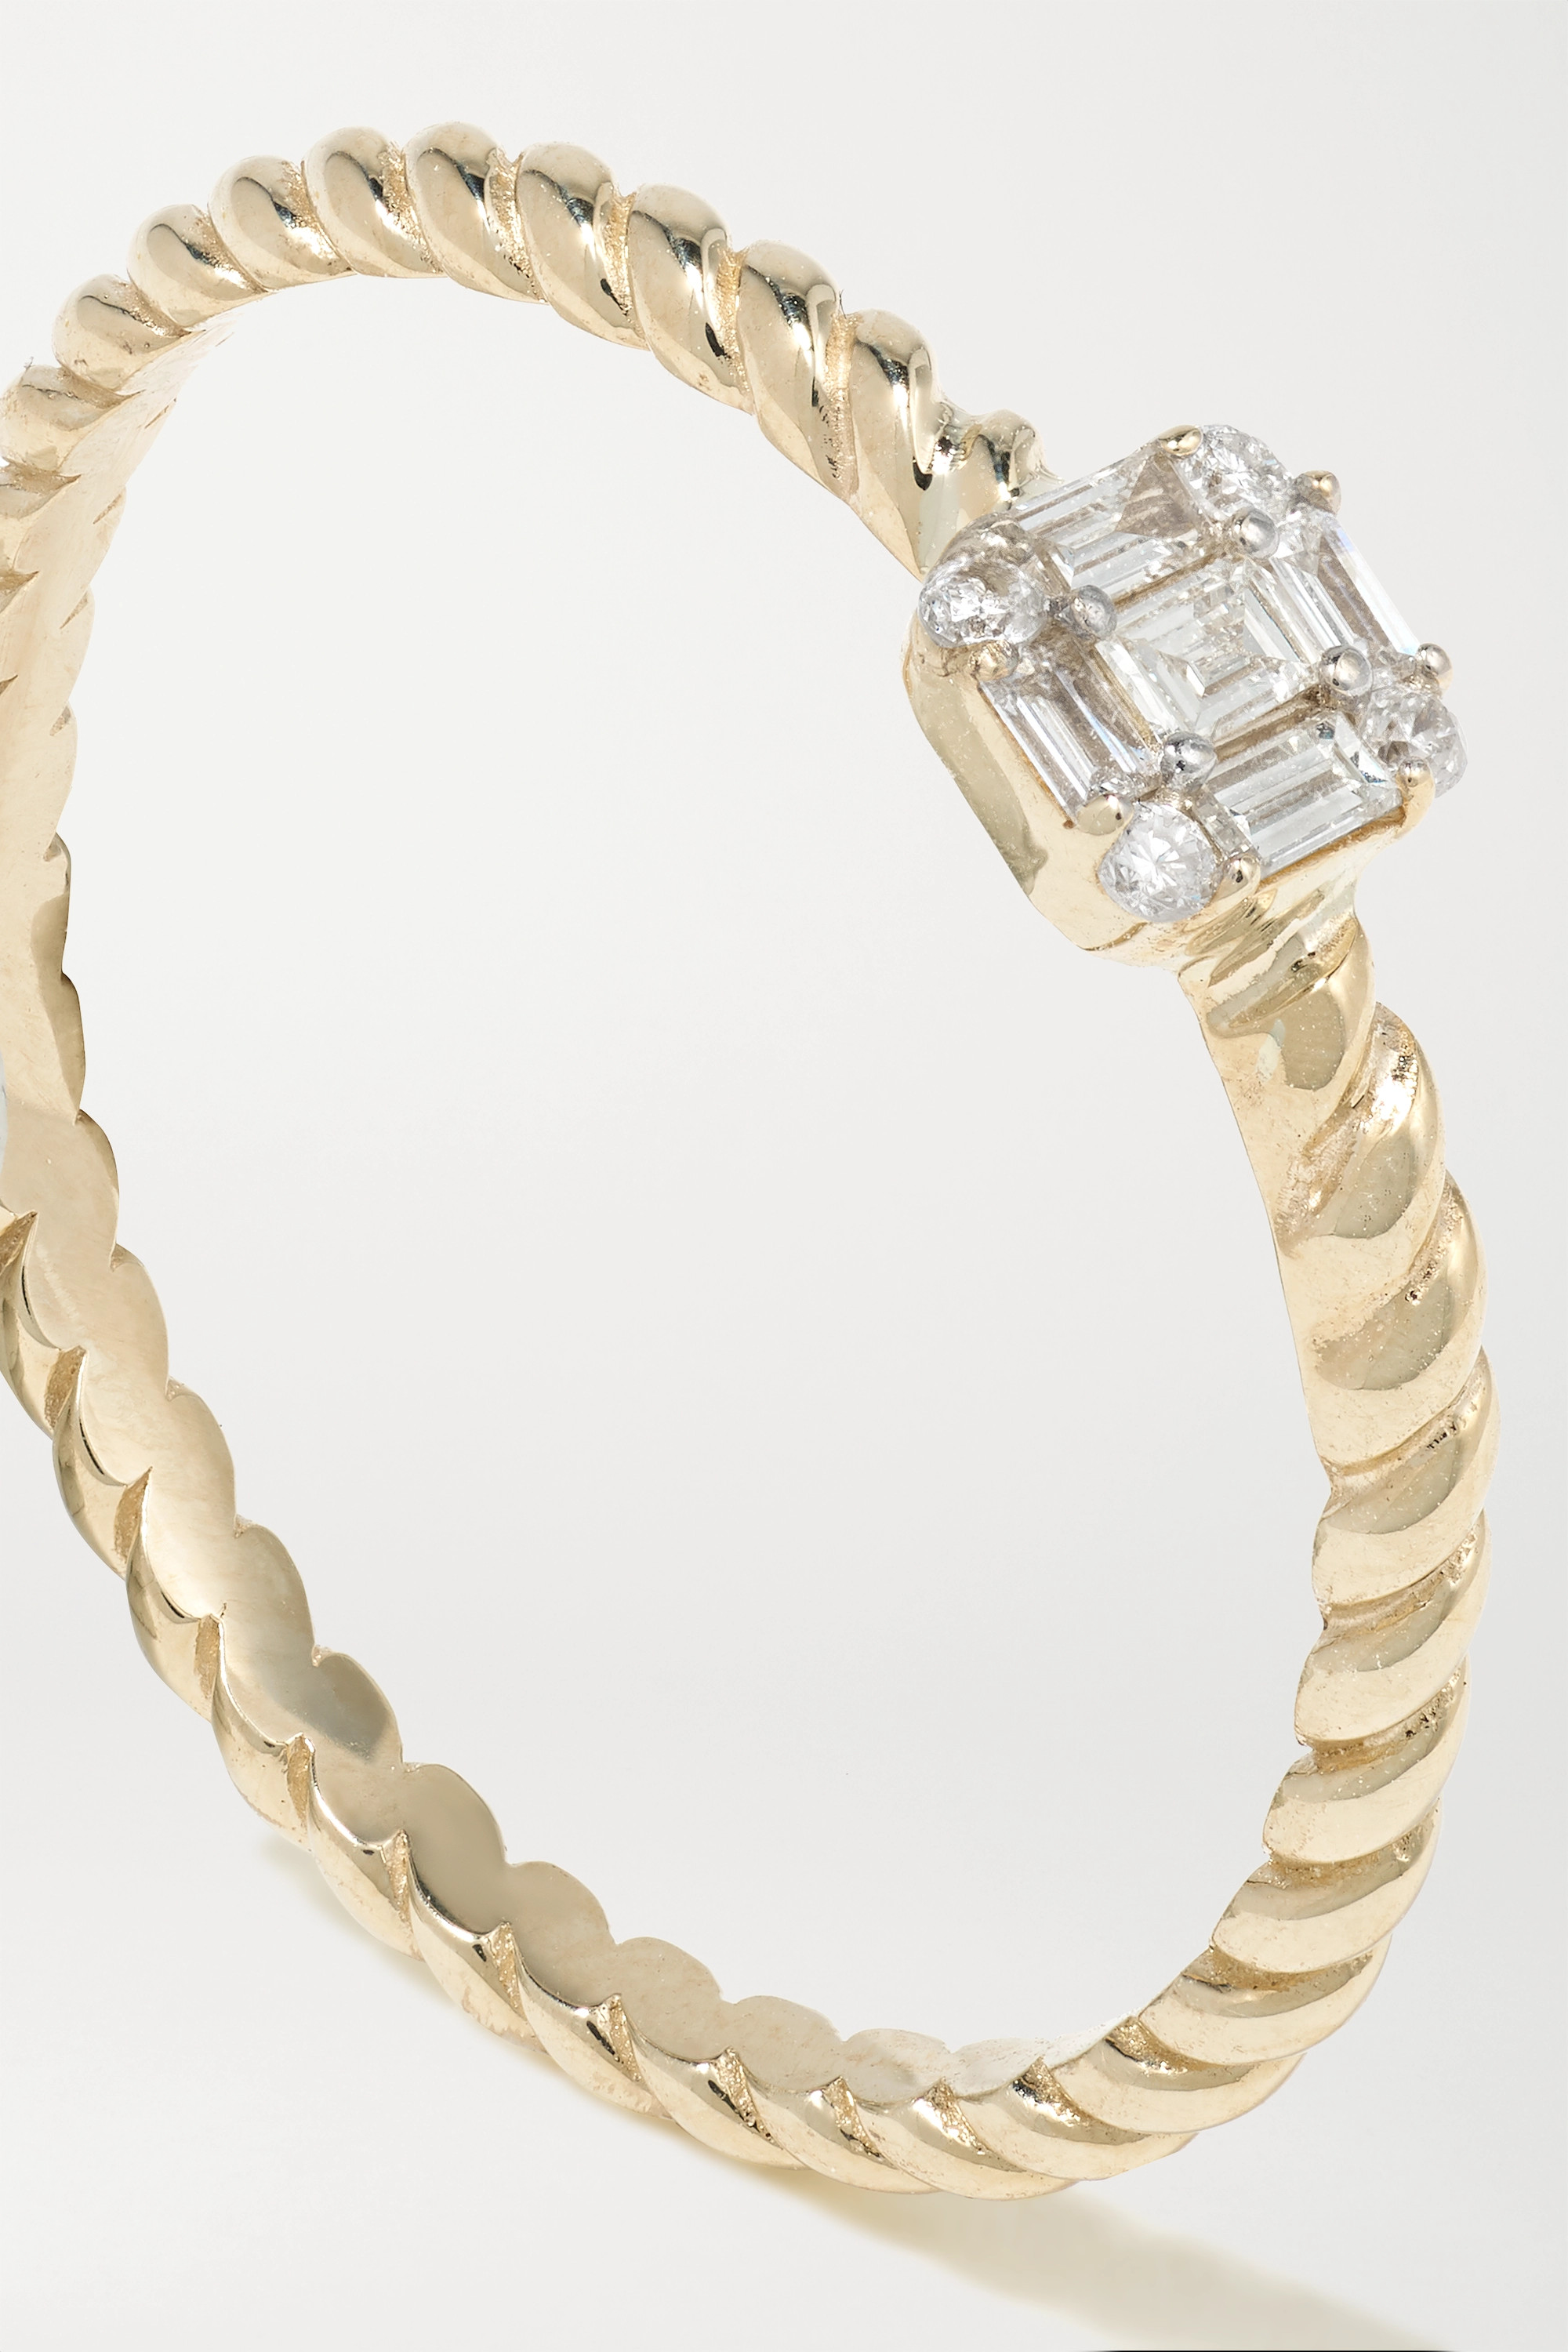 STONE AND STRAND Bague en or 9 carats (375/1000) et diamants Shield of Strength